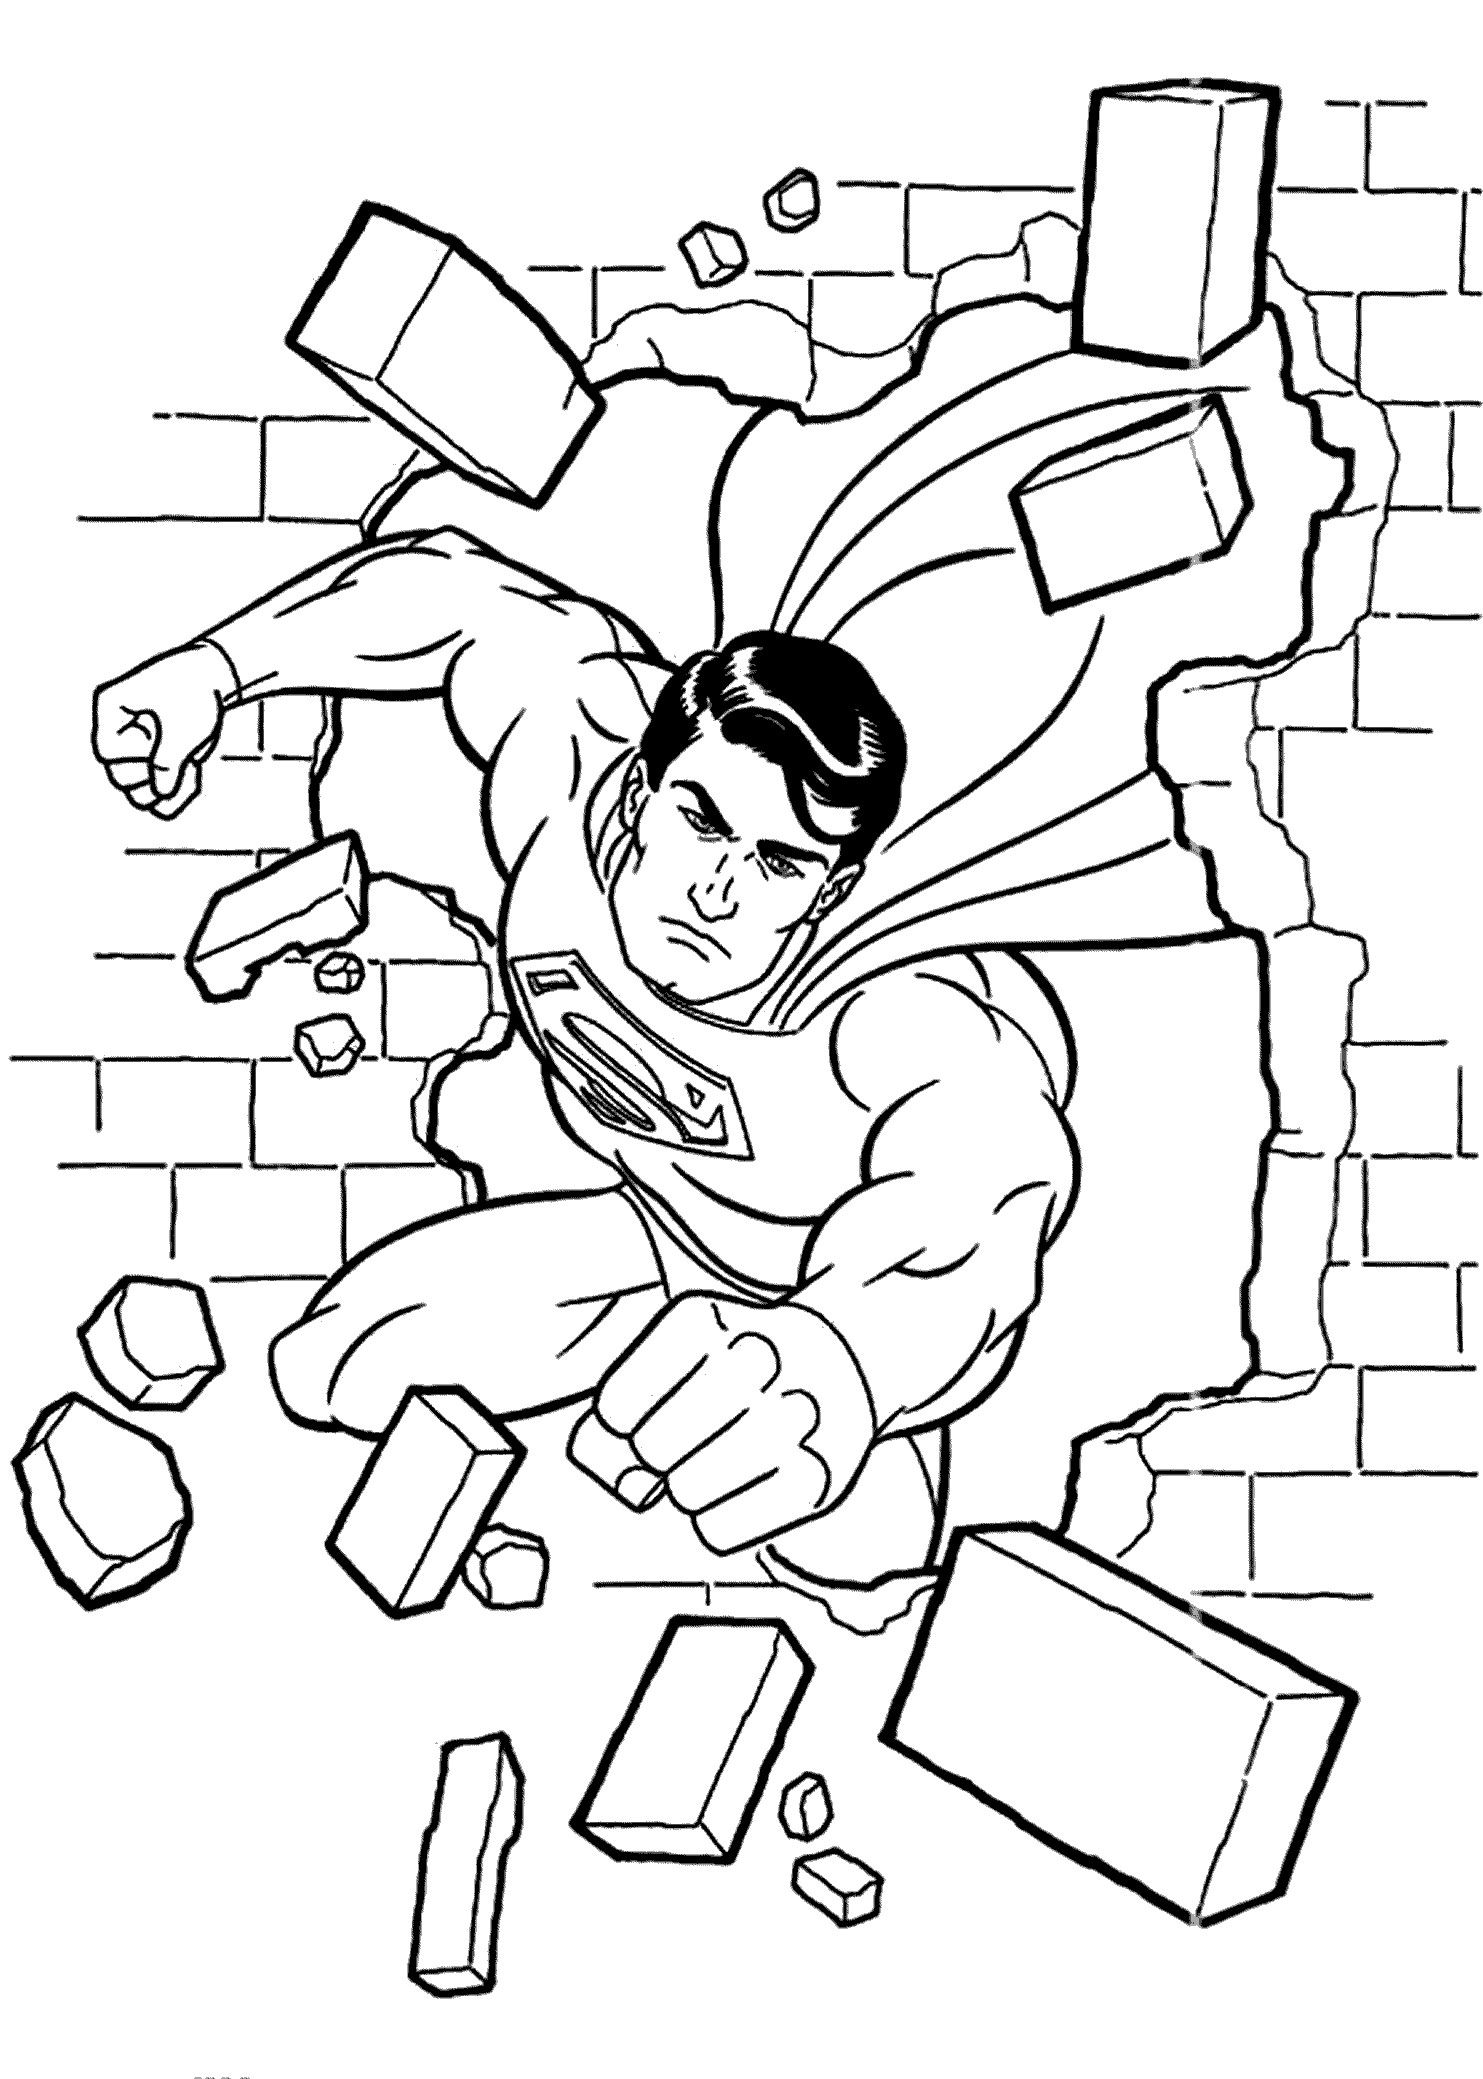 10 spiderman coloring book pages, spiderman coloring book ...